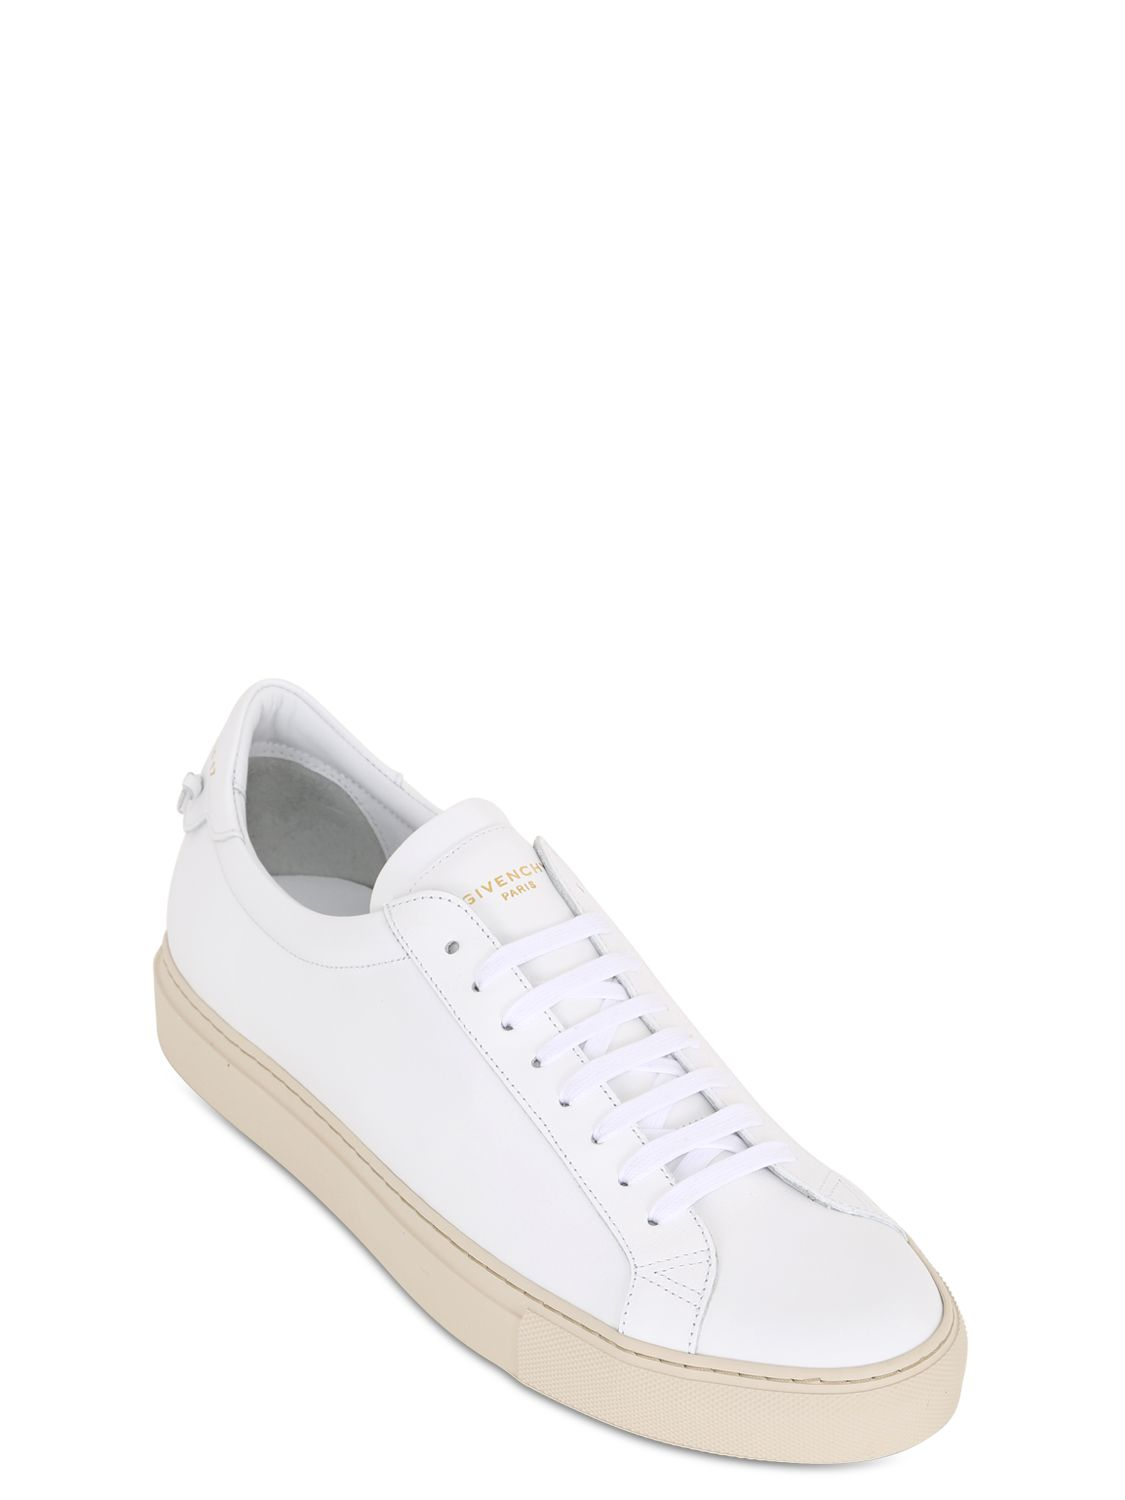 Lyst Givenchy Urban Street Leather Tennis Sneakers In White